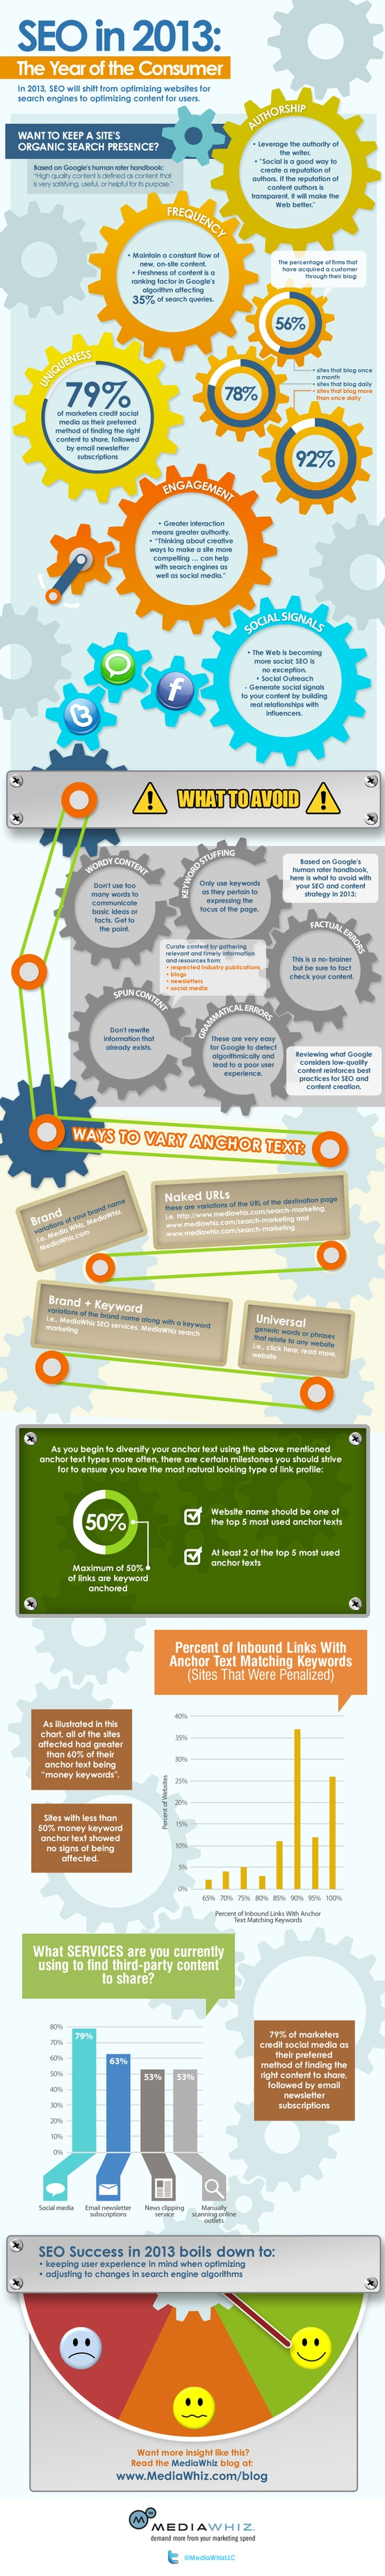 Infographic SEO in 2013 -year of consumer